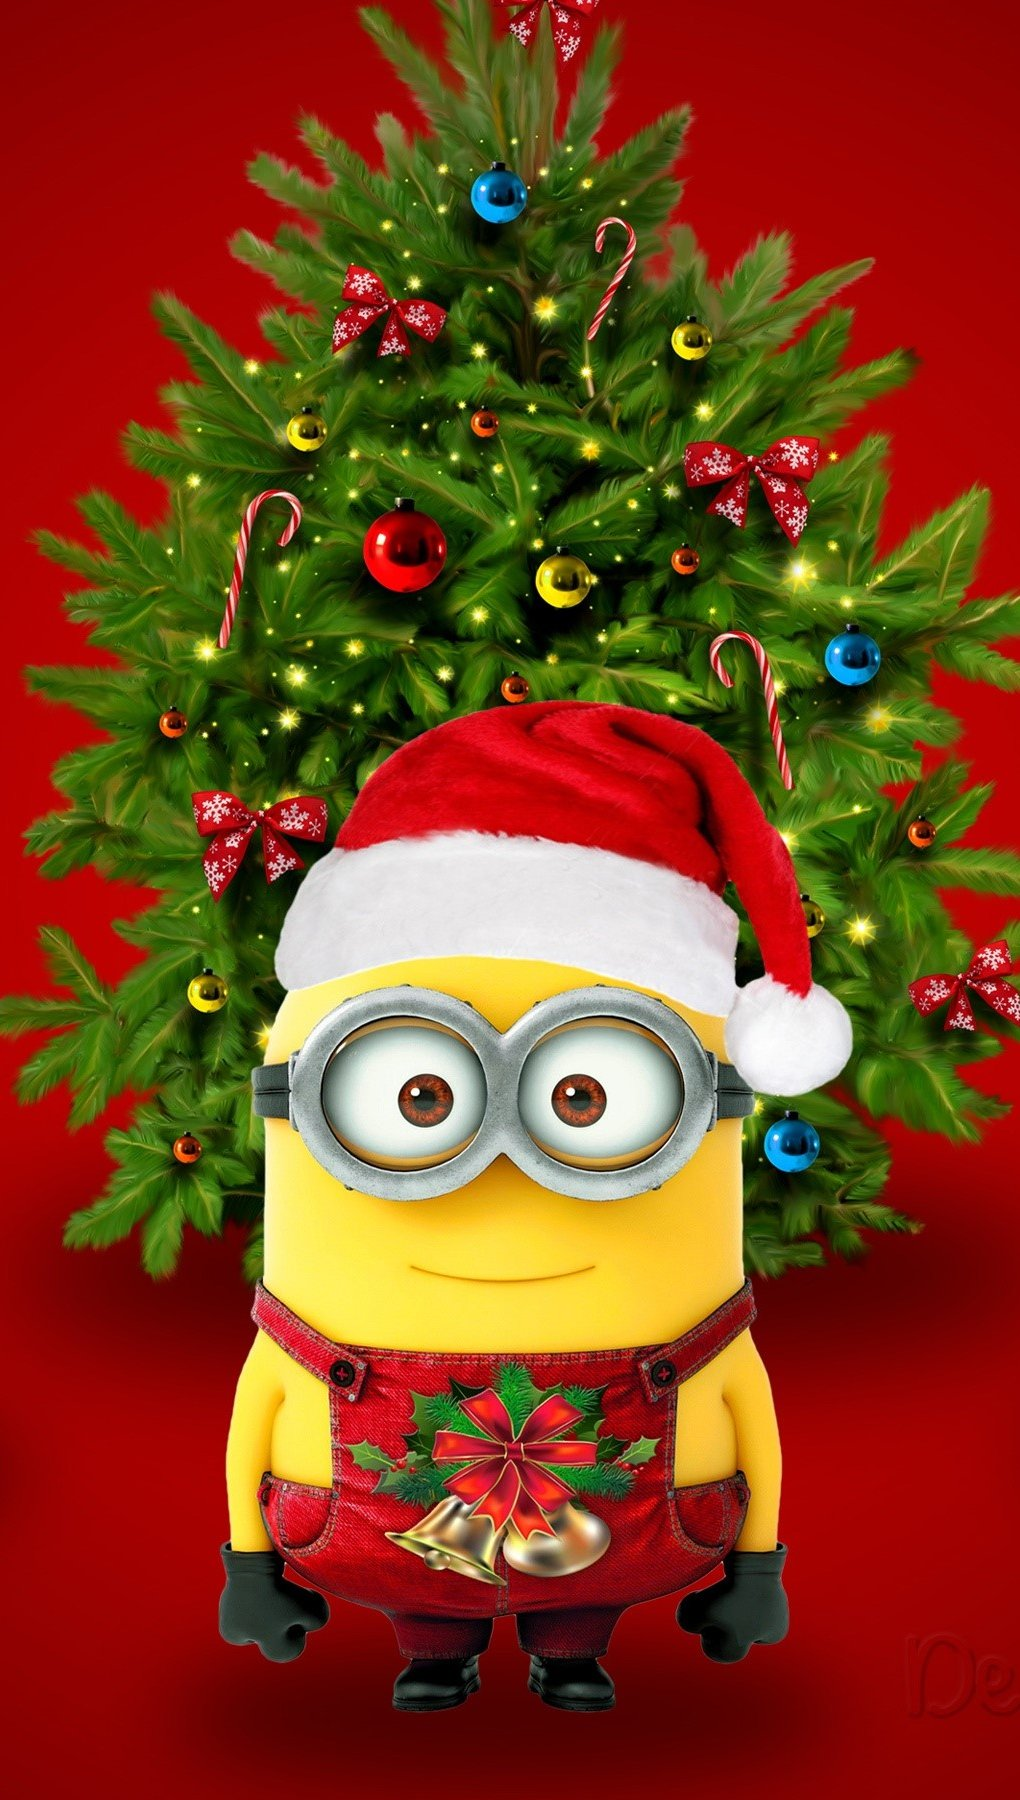 Wallpaper Minions dressed as Santa Vertical